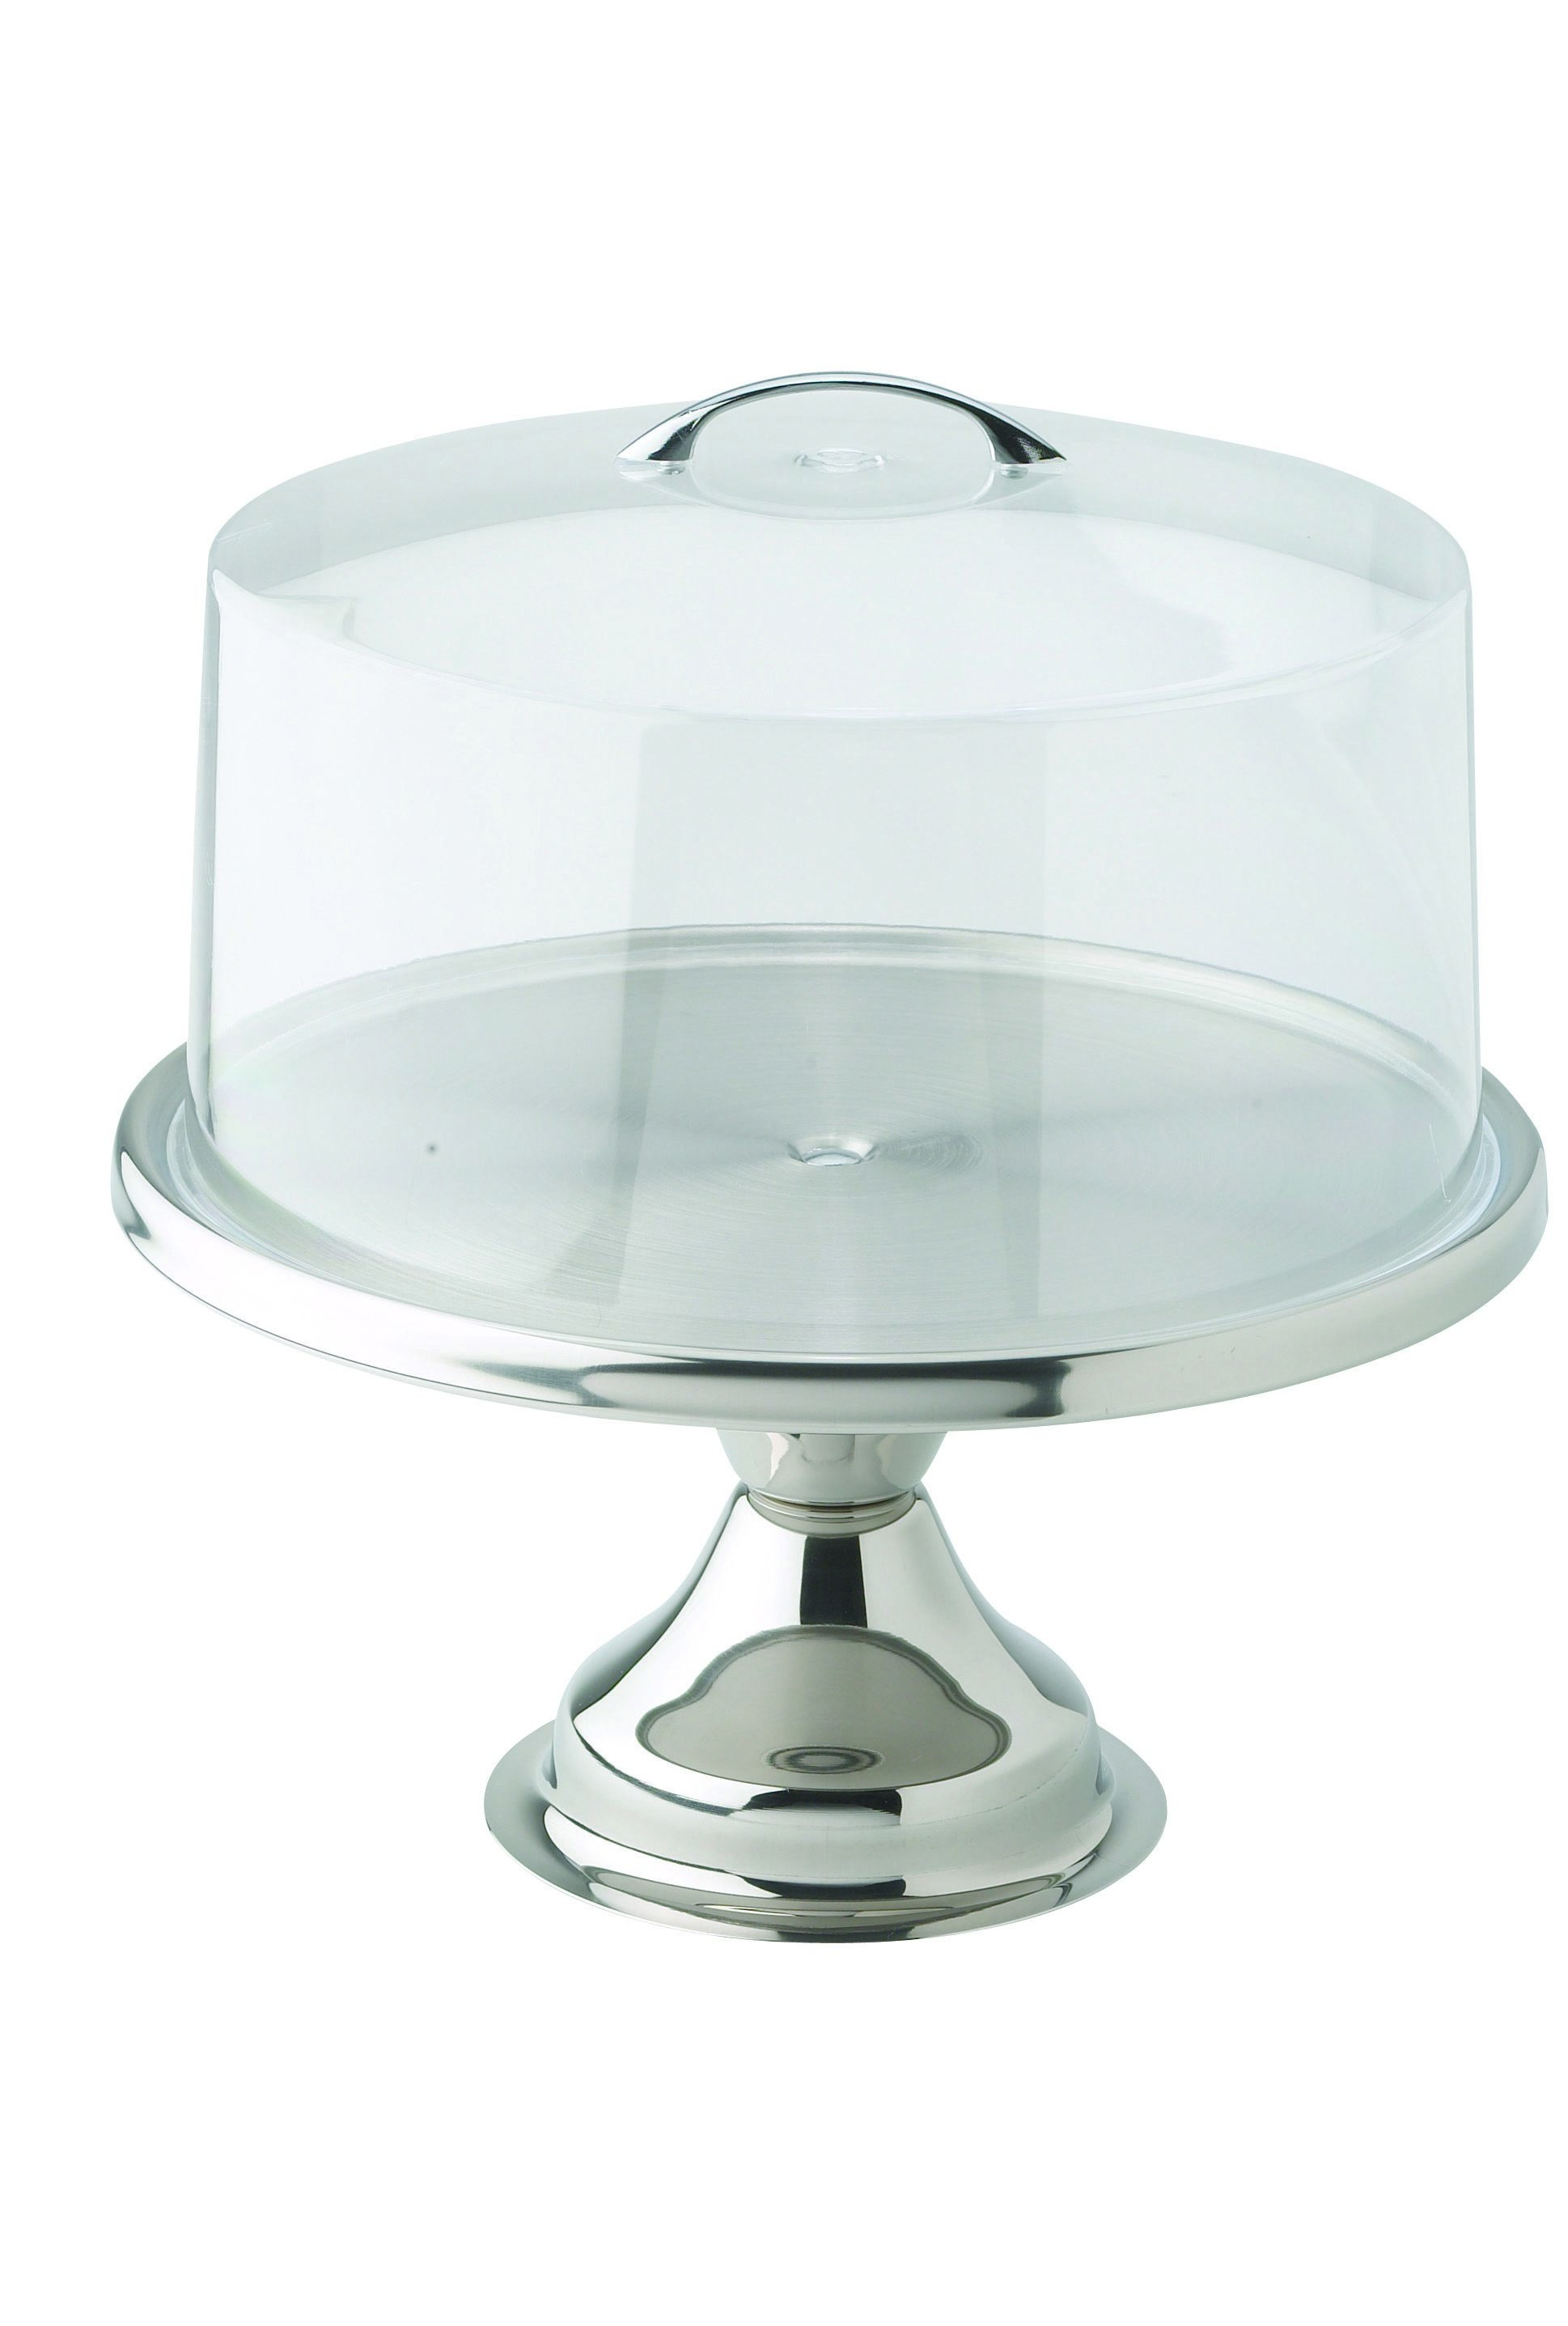 Stainless Cake Stand Without Cover - 13